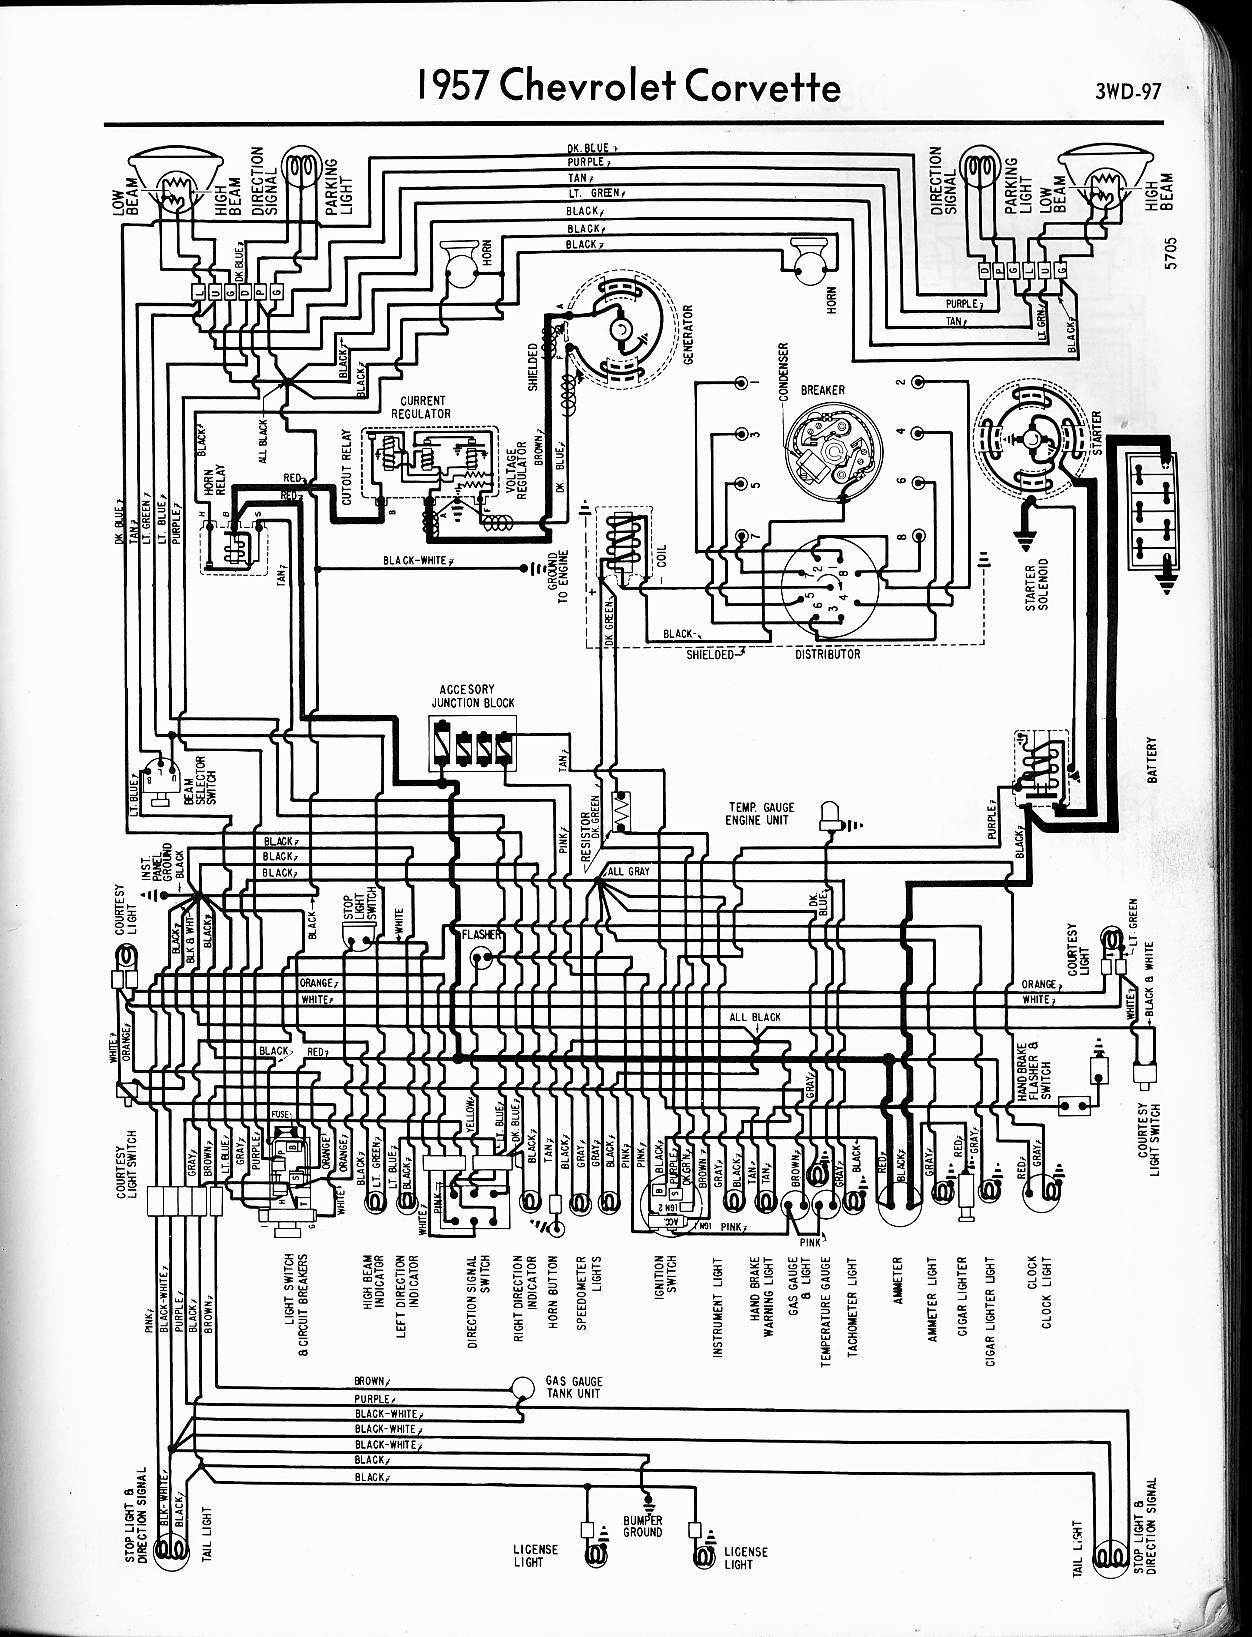 MWireChev57_3WD 097 57 65 chevy wiring diagrams chevy wiring at bayanpartner.co